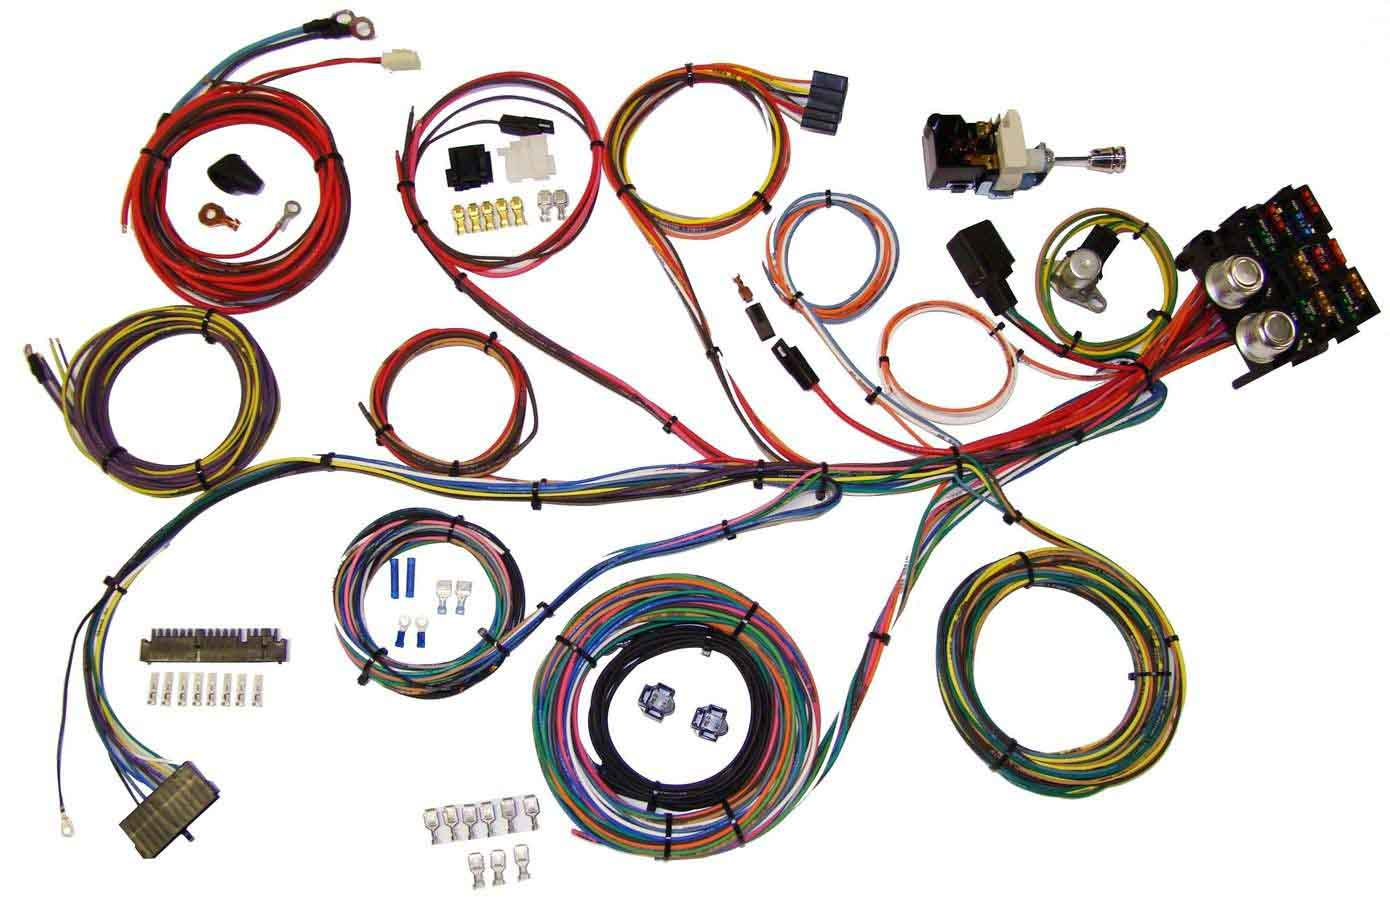 Shop for Wiring Harnesses :: Racecar Engineering Race Car Wiring Harness Kit on